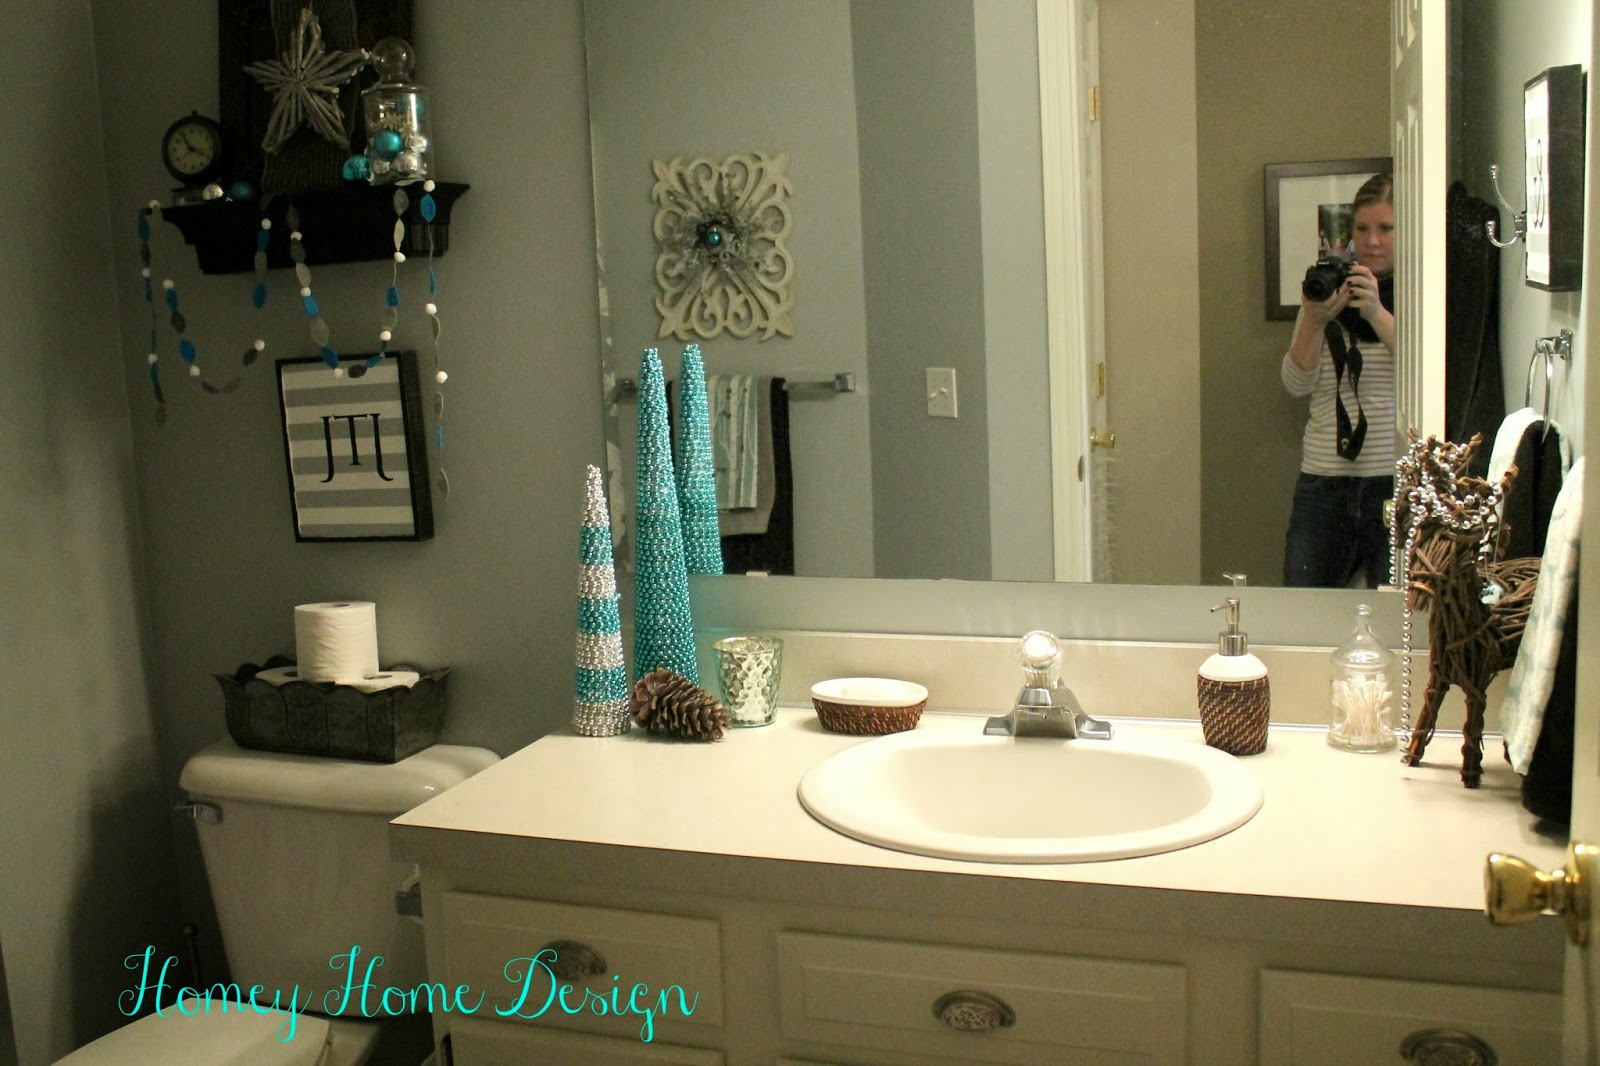 Homey home design bathroom christmas ideas for Bath design ideas